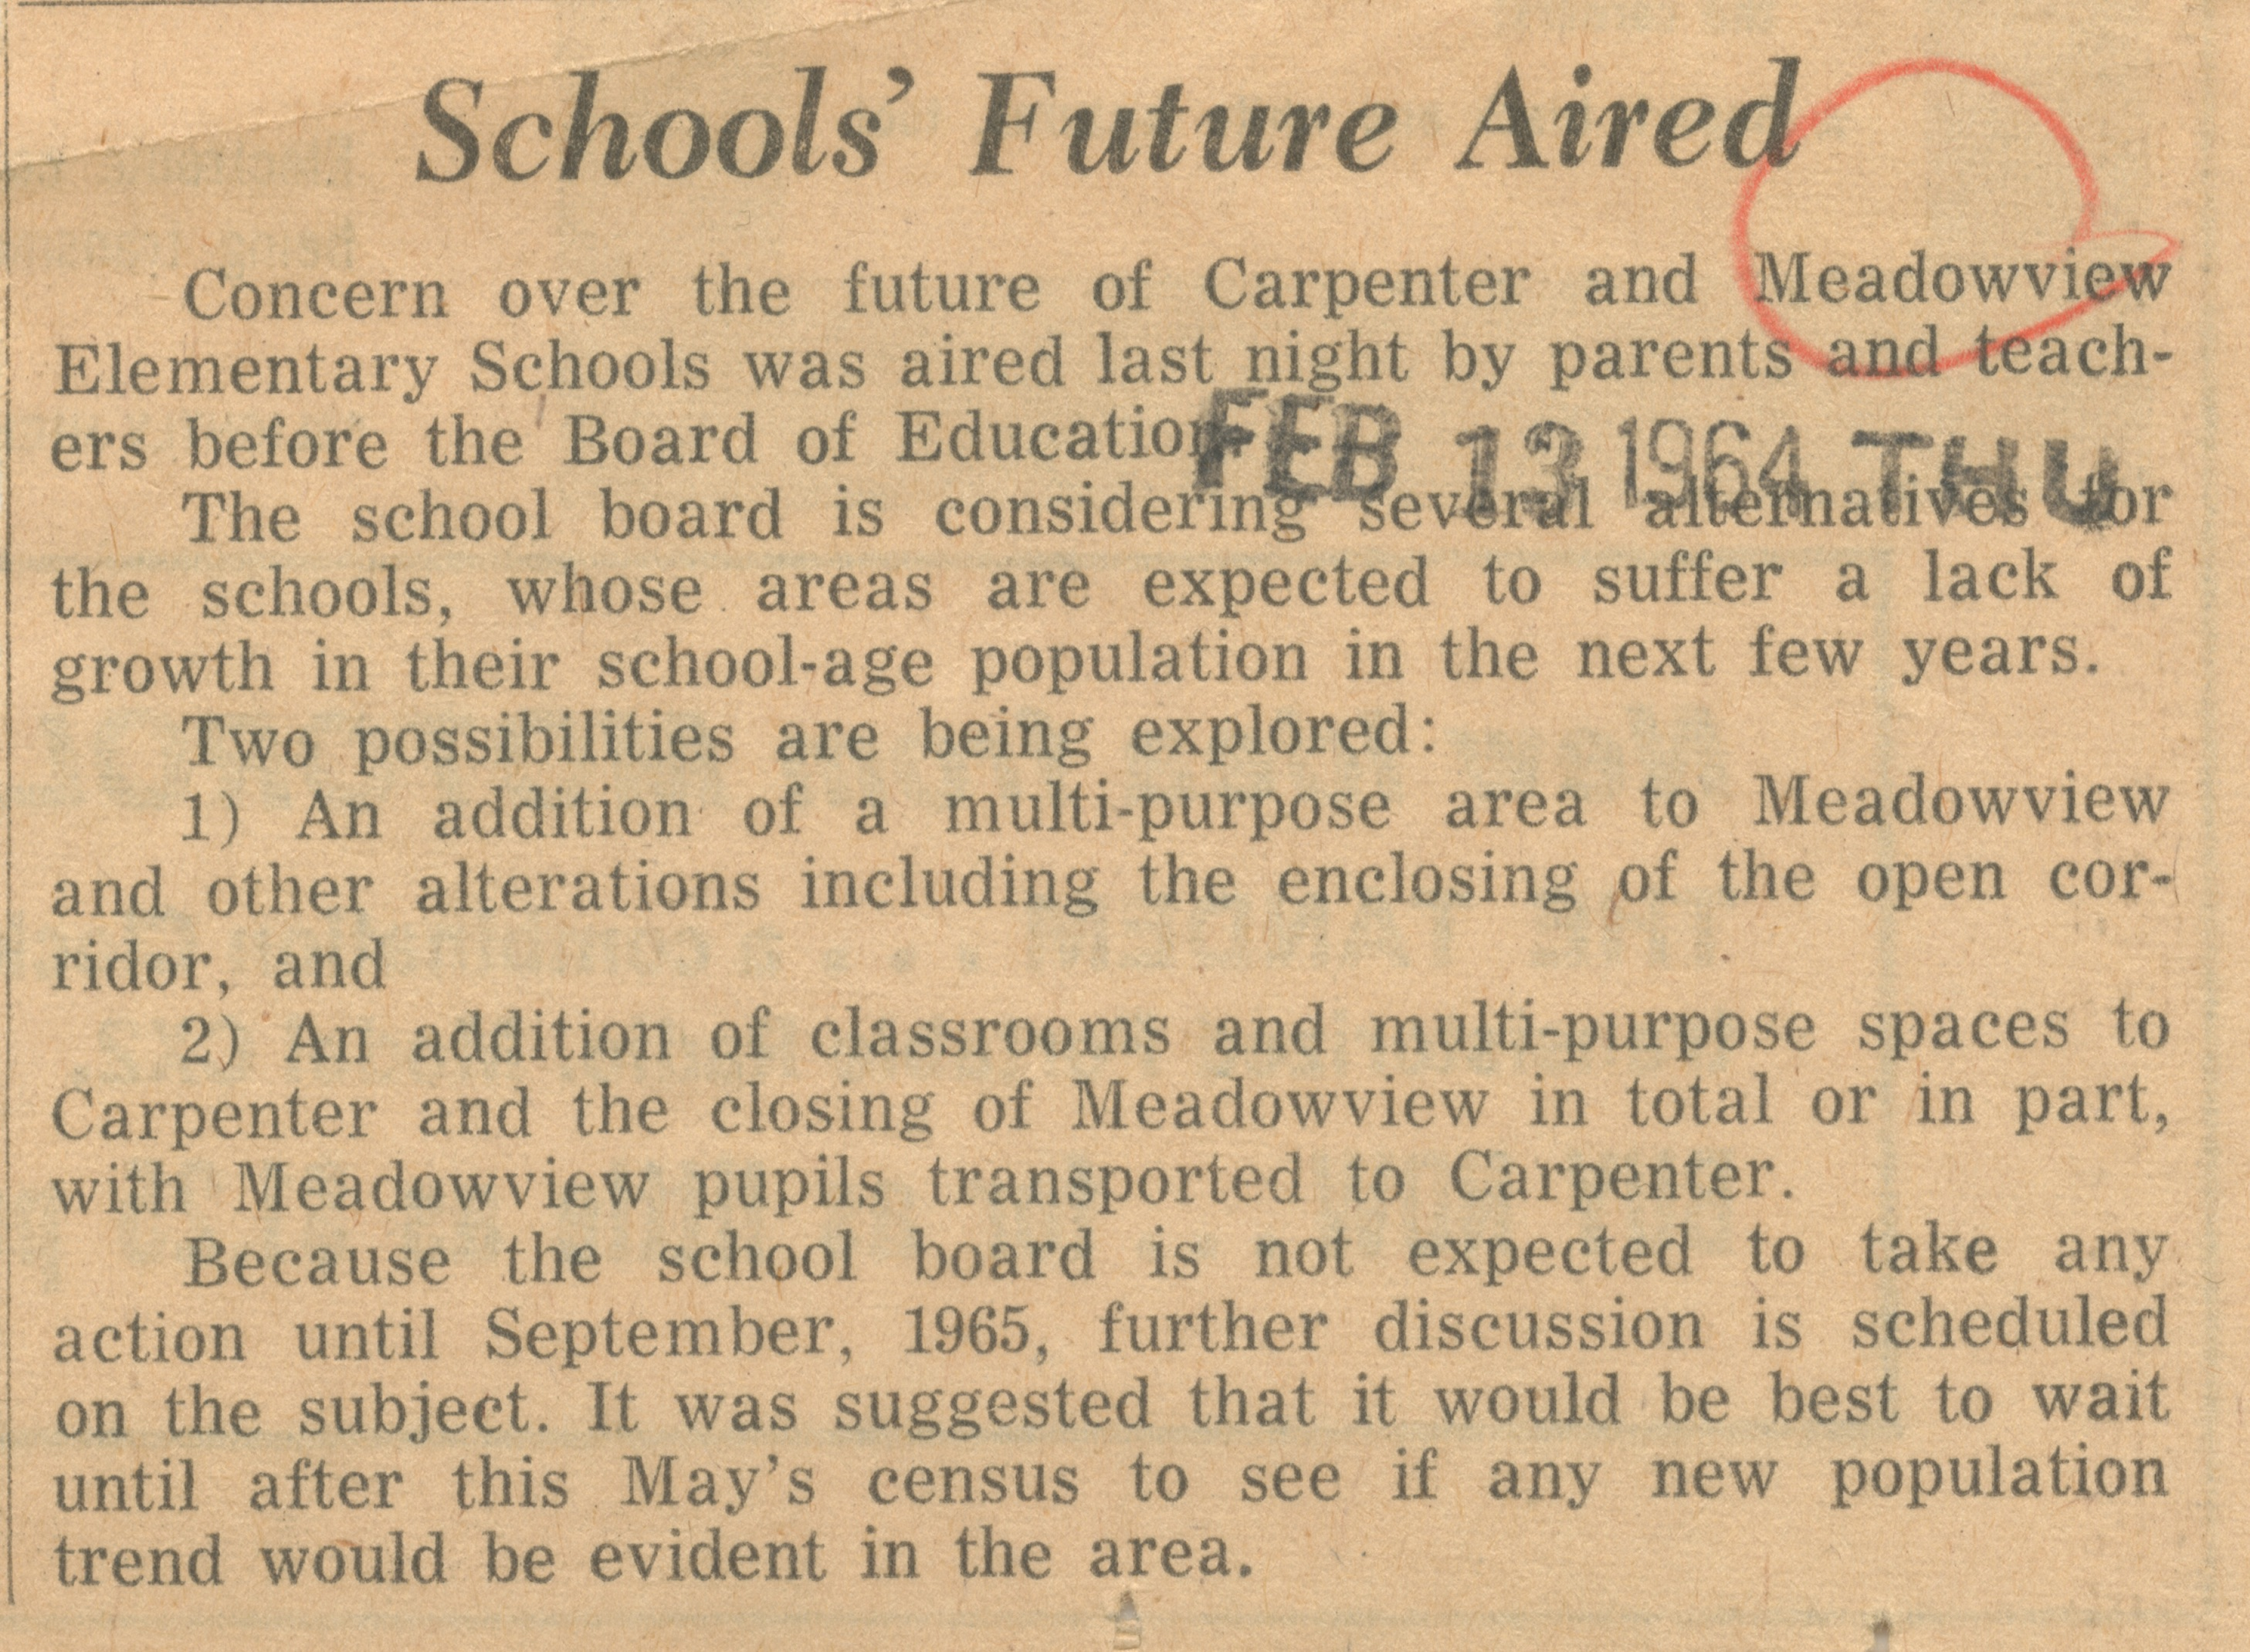 Schools' Future Aired image